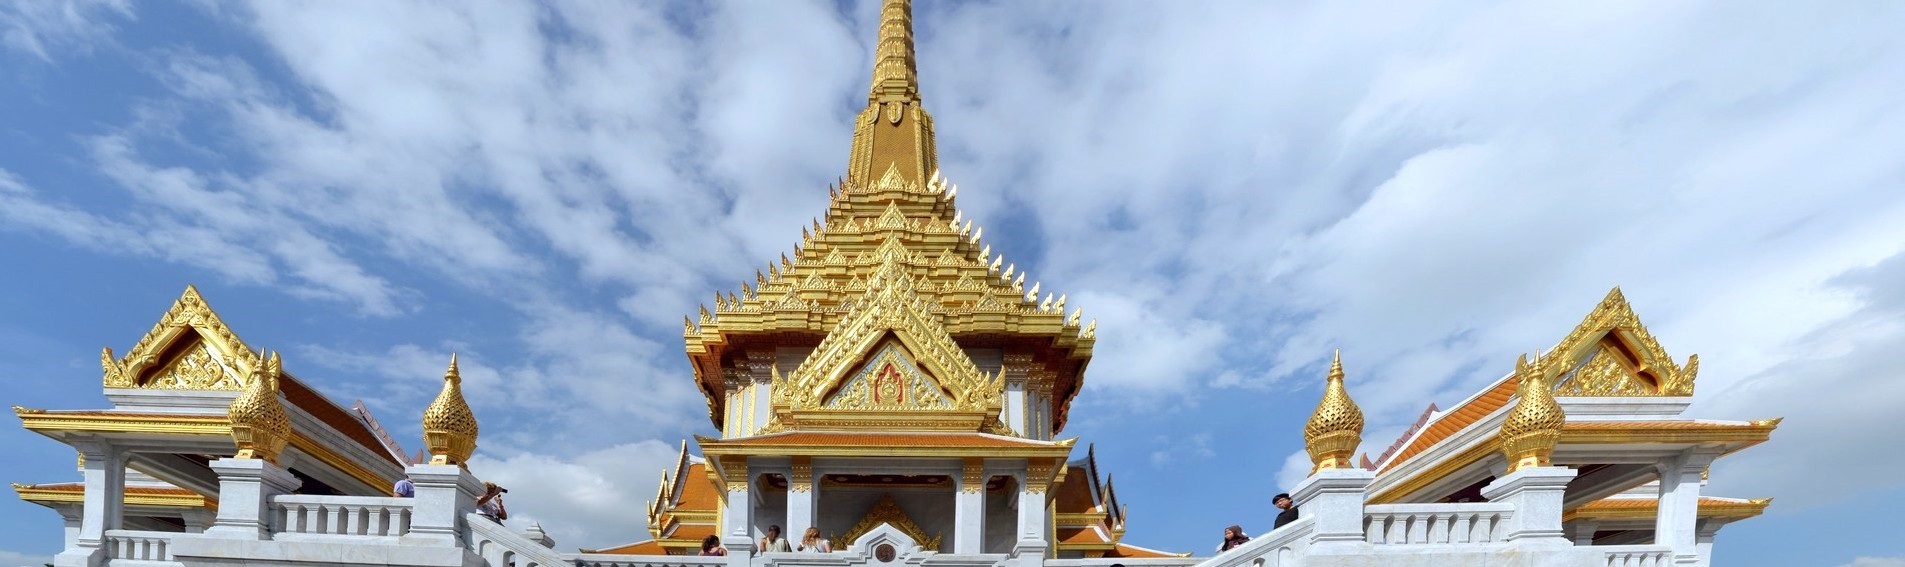 Golden Buddha-Wat traimit Withayaram